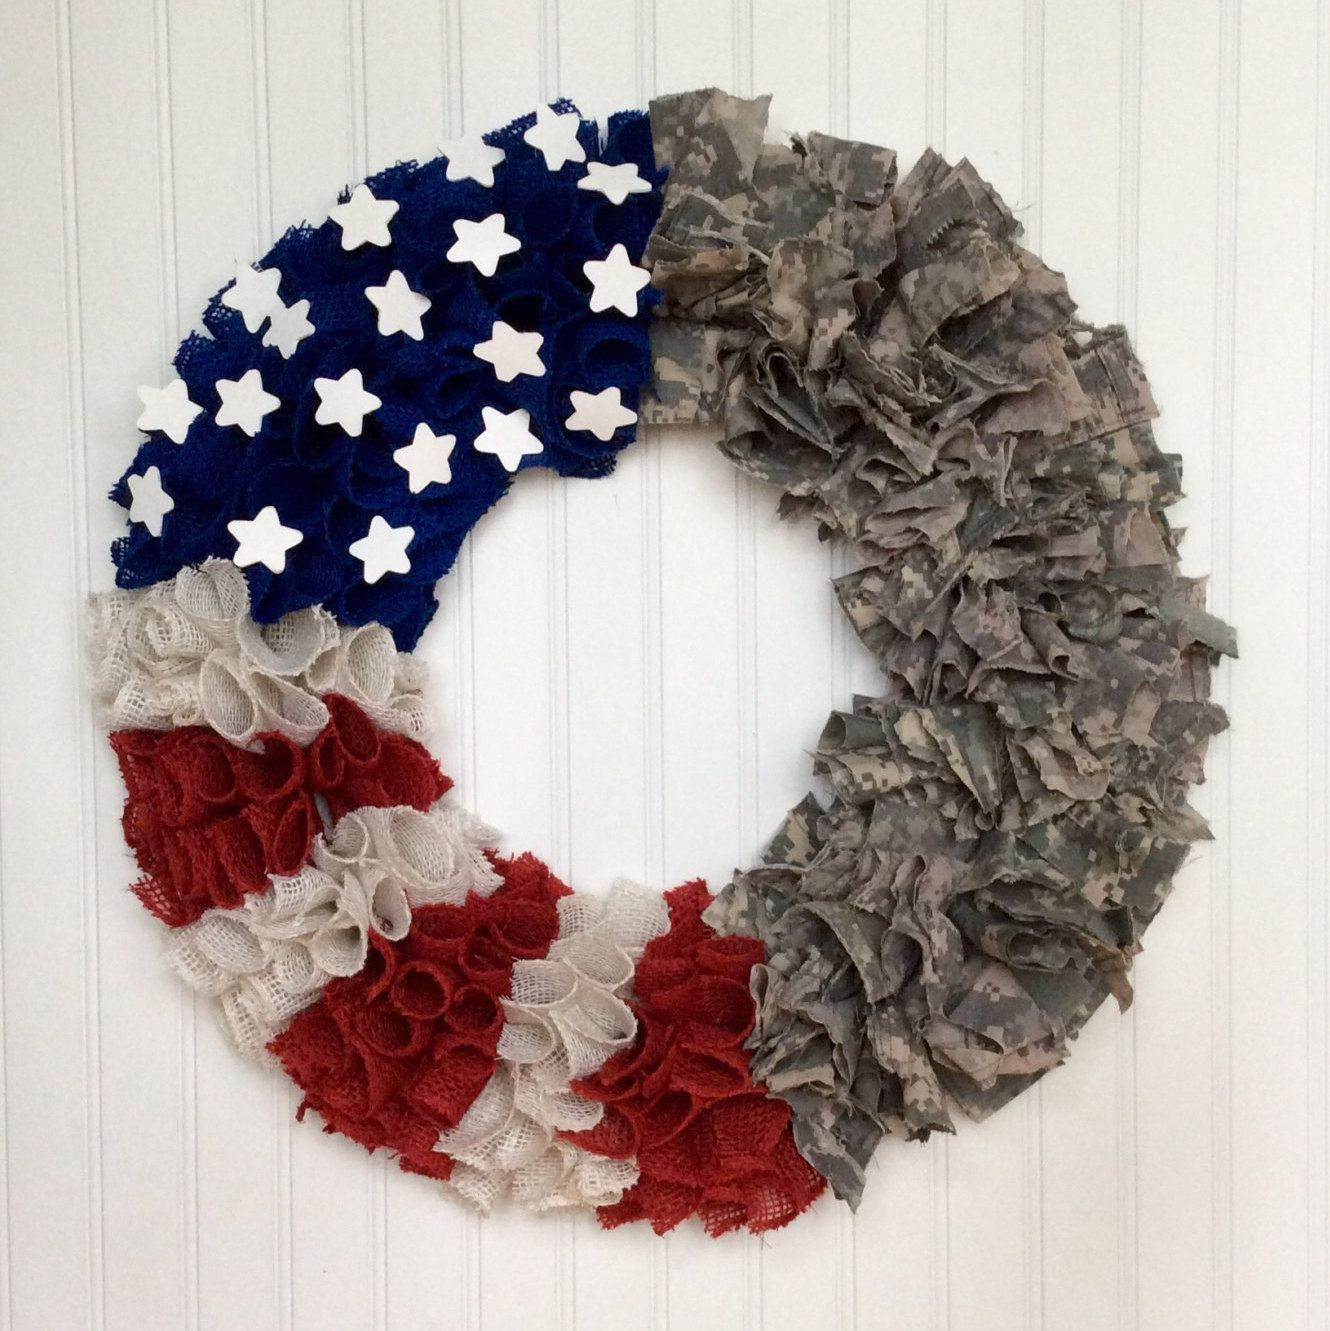 17 Patriotic DIY Veterans Day Decoration Ideas You Can Use As Gifts #veteransdaydecorations 17 Patriotic DIY Veterans Day Decoration Ideas You Can Use As Gifts #veteransdaydecorations 17 Patriotic DIY Veterans Day Decoration Ideas You Can Use As Gifts #veteransdaydecorations 17 Patriotic DIY Veterans Day Decoration Ideas You Can Use As Gifts #veteransdaydecorations